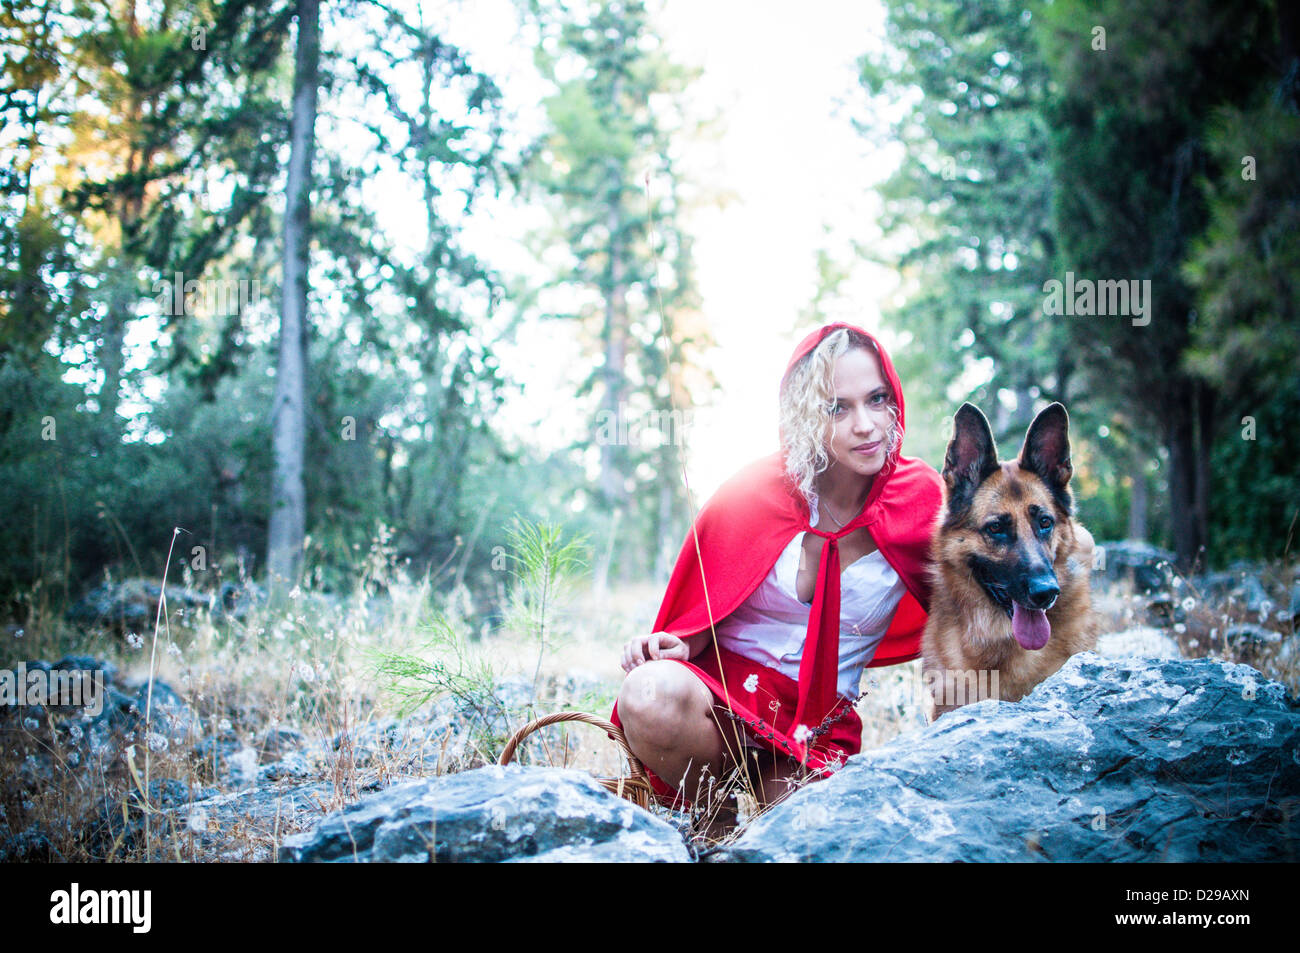 The Big Bad Wolf and Little red ridding hood in the forest - Stock Image